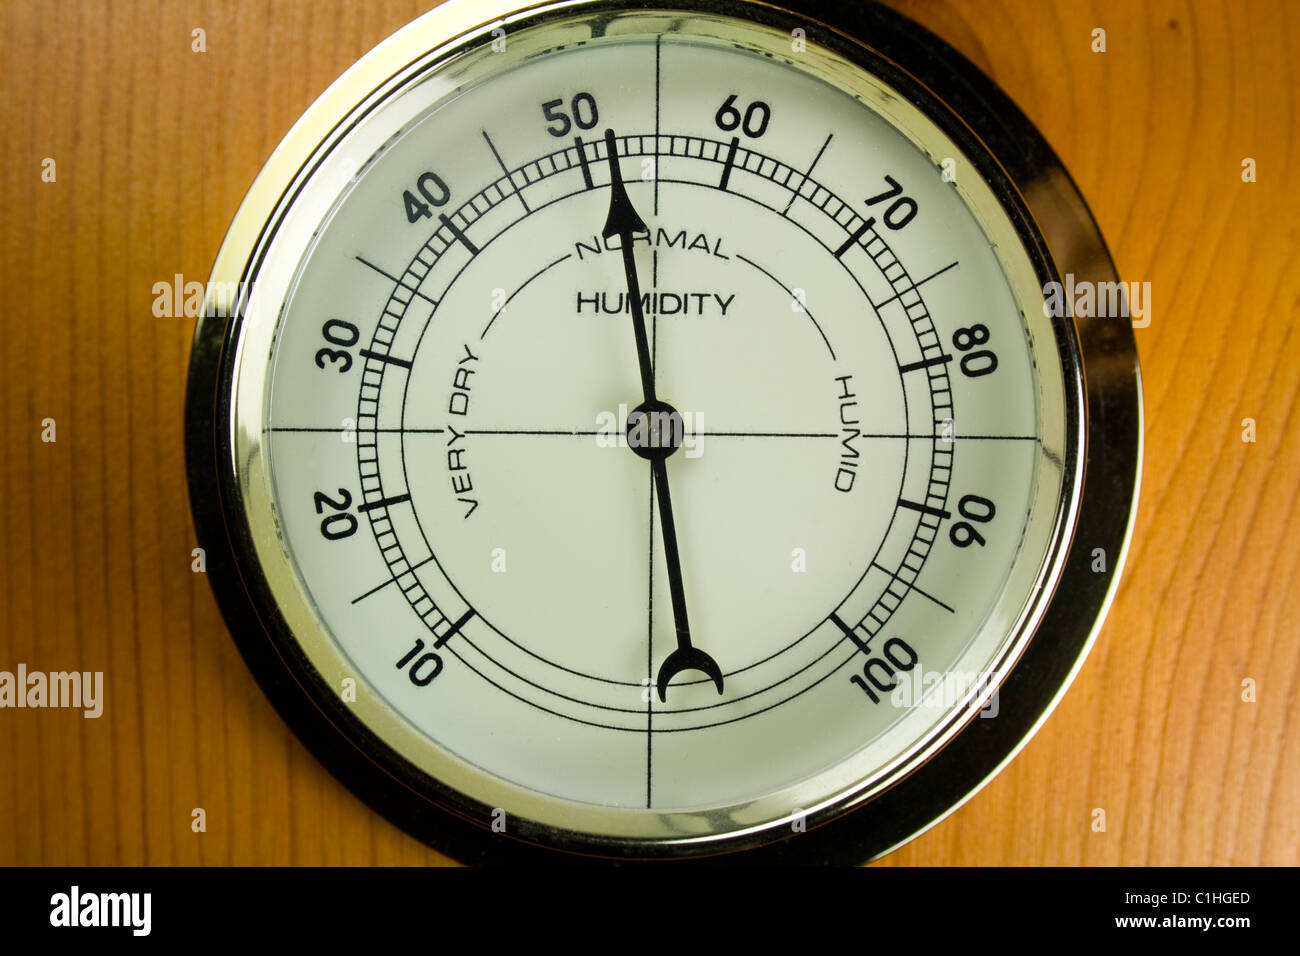 Hygrometer - Air Humidity Gauge - Stock Image